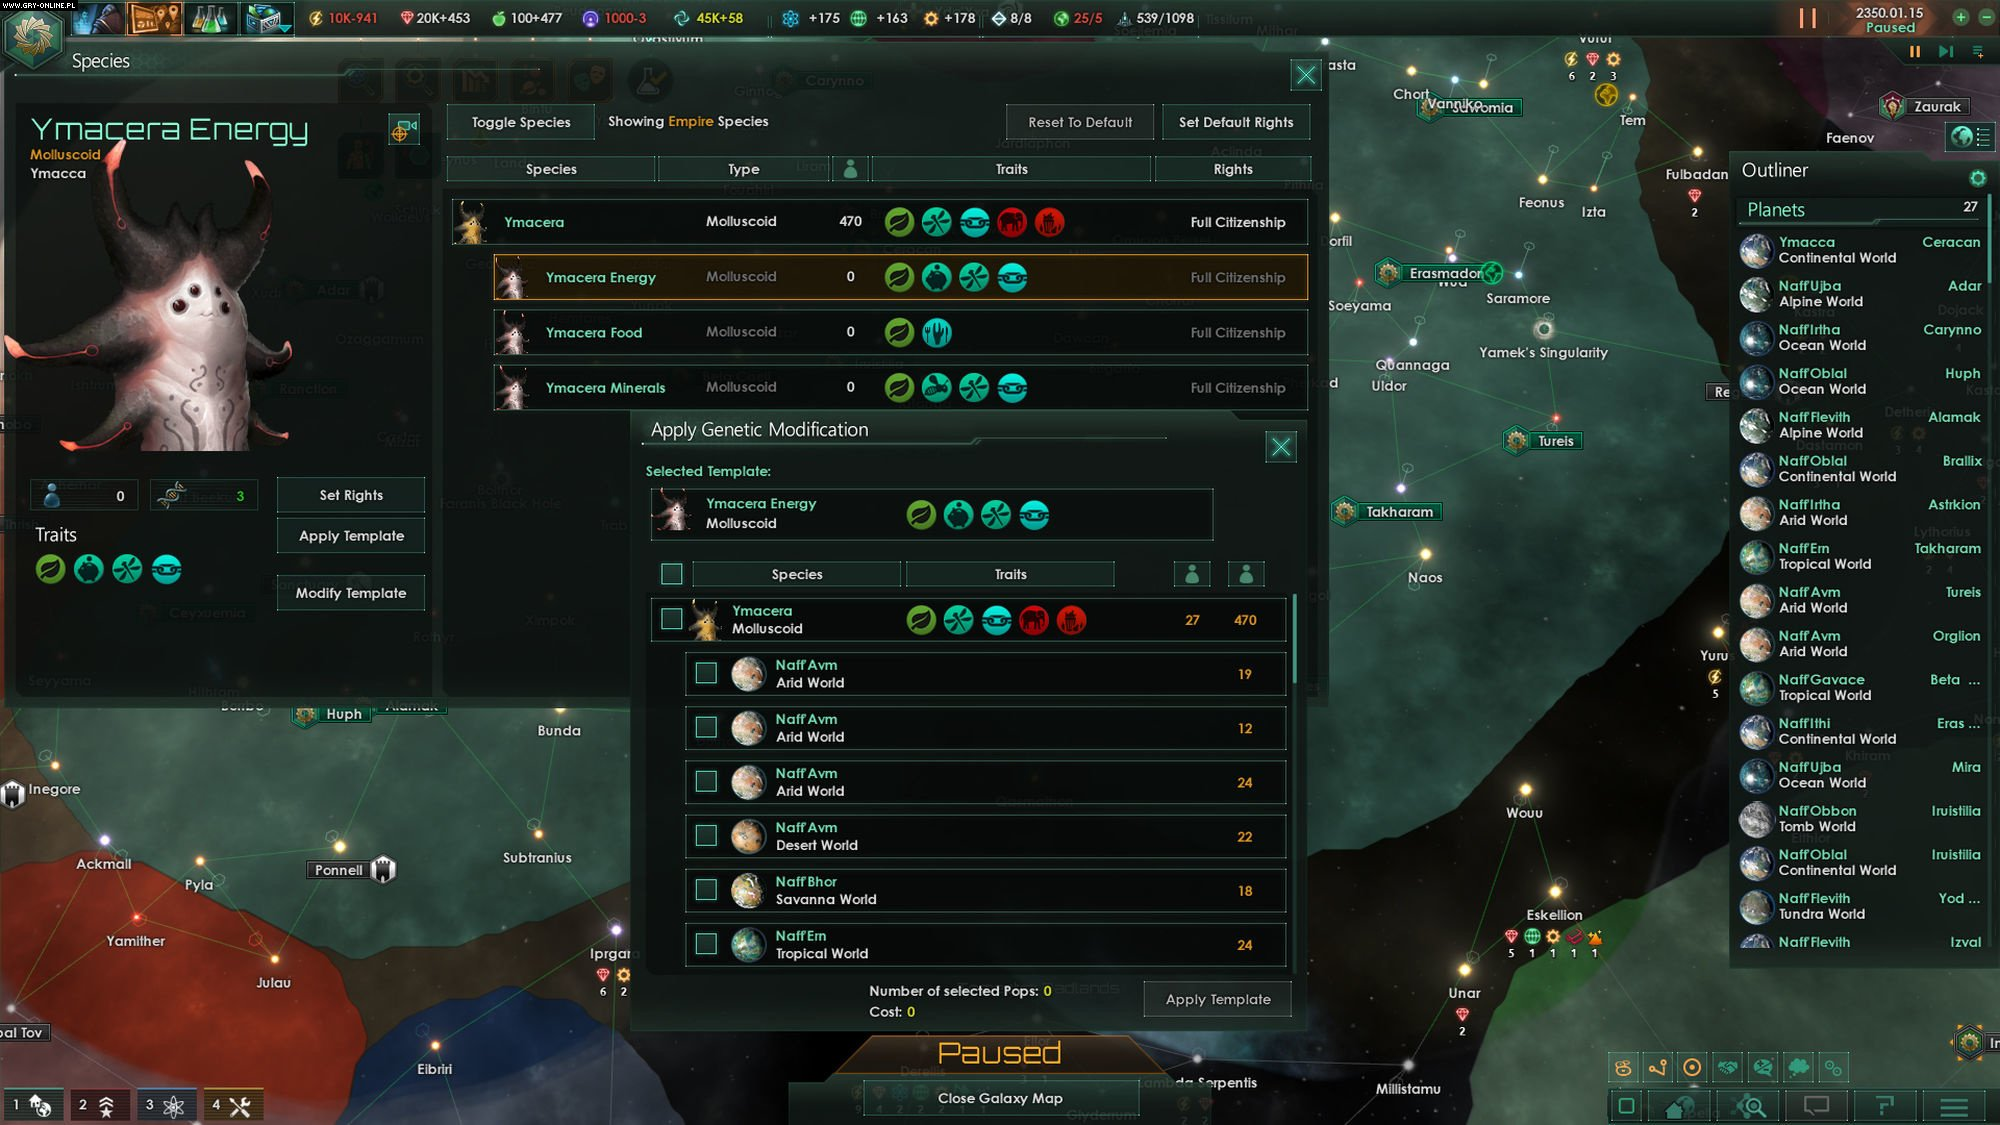 Stellaris PC Games Image 3/35, Paradox Development Studio, Paradox Interactive